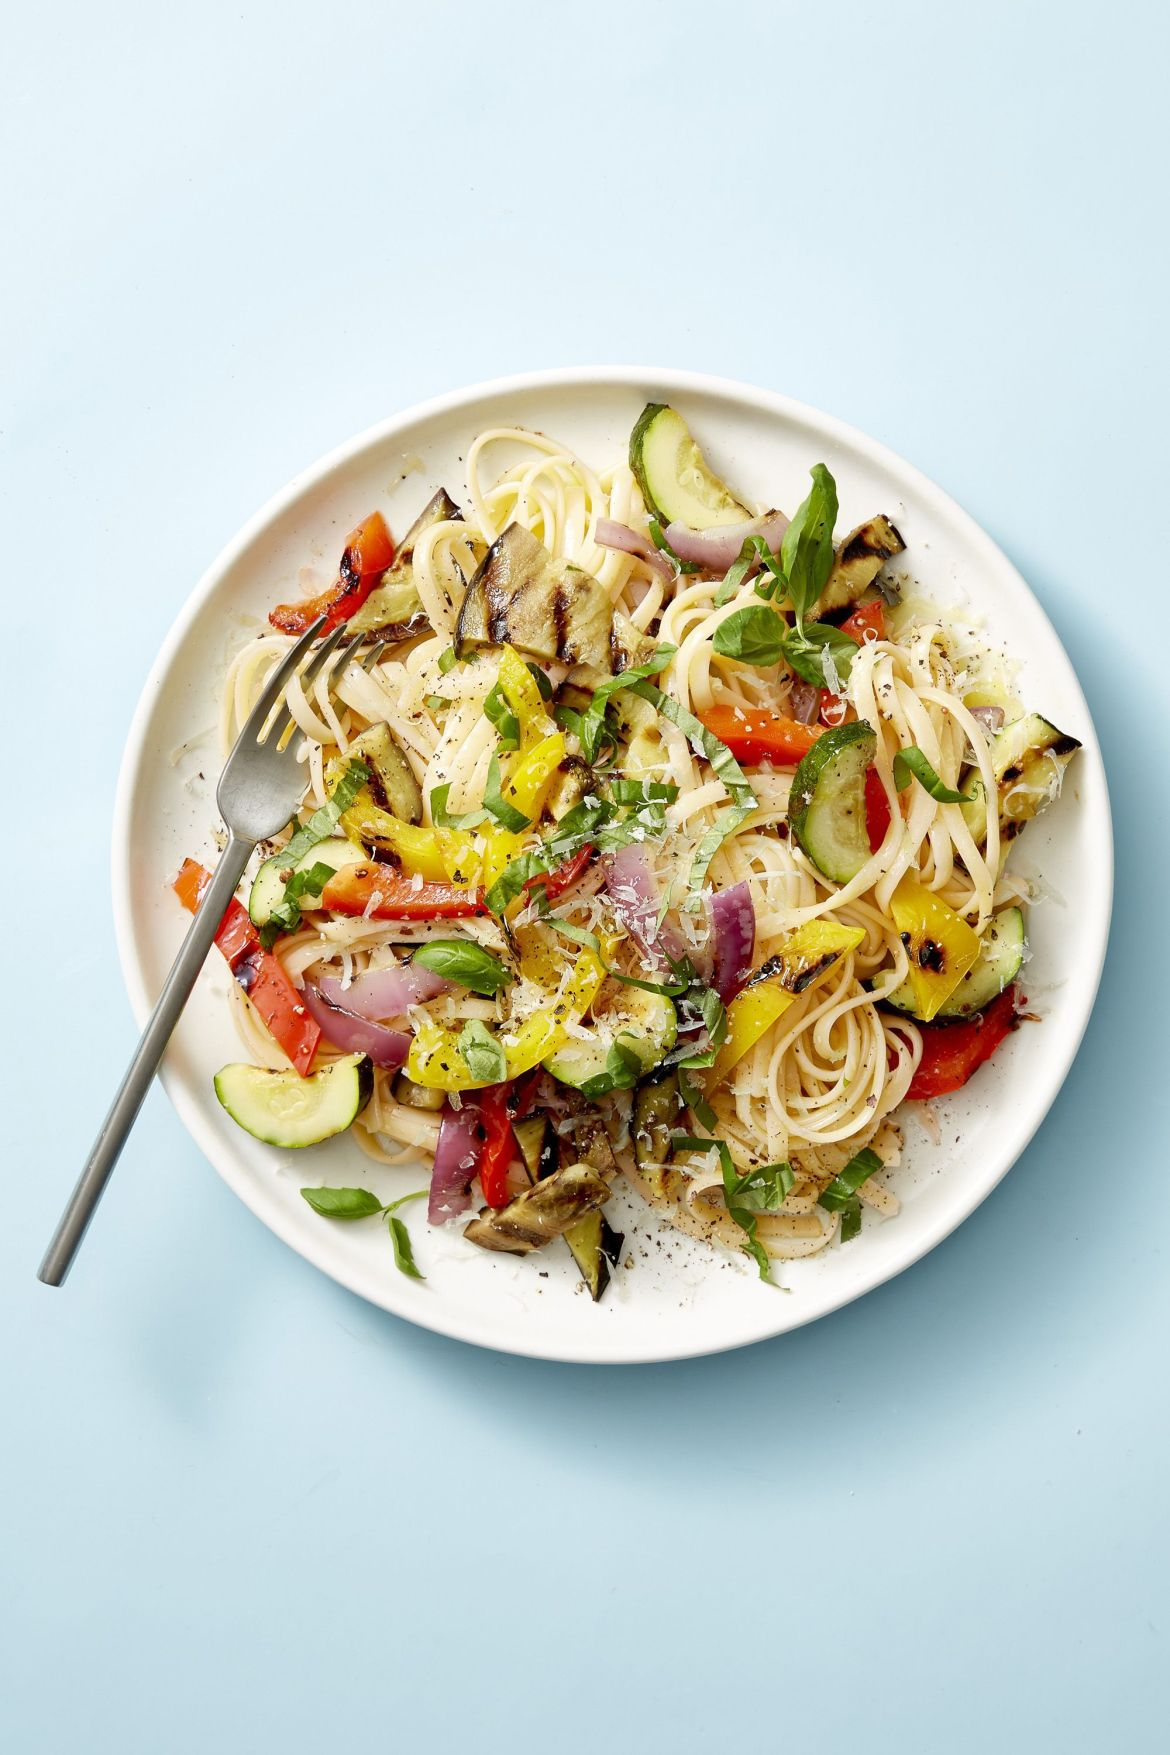 grilled ratatouille linguine healthy lunch ideas 1555338056 - Healthy Things to Eat for Lunch -19 Healthy Lunch Ideas for You